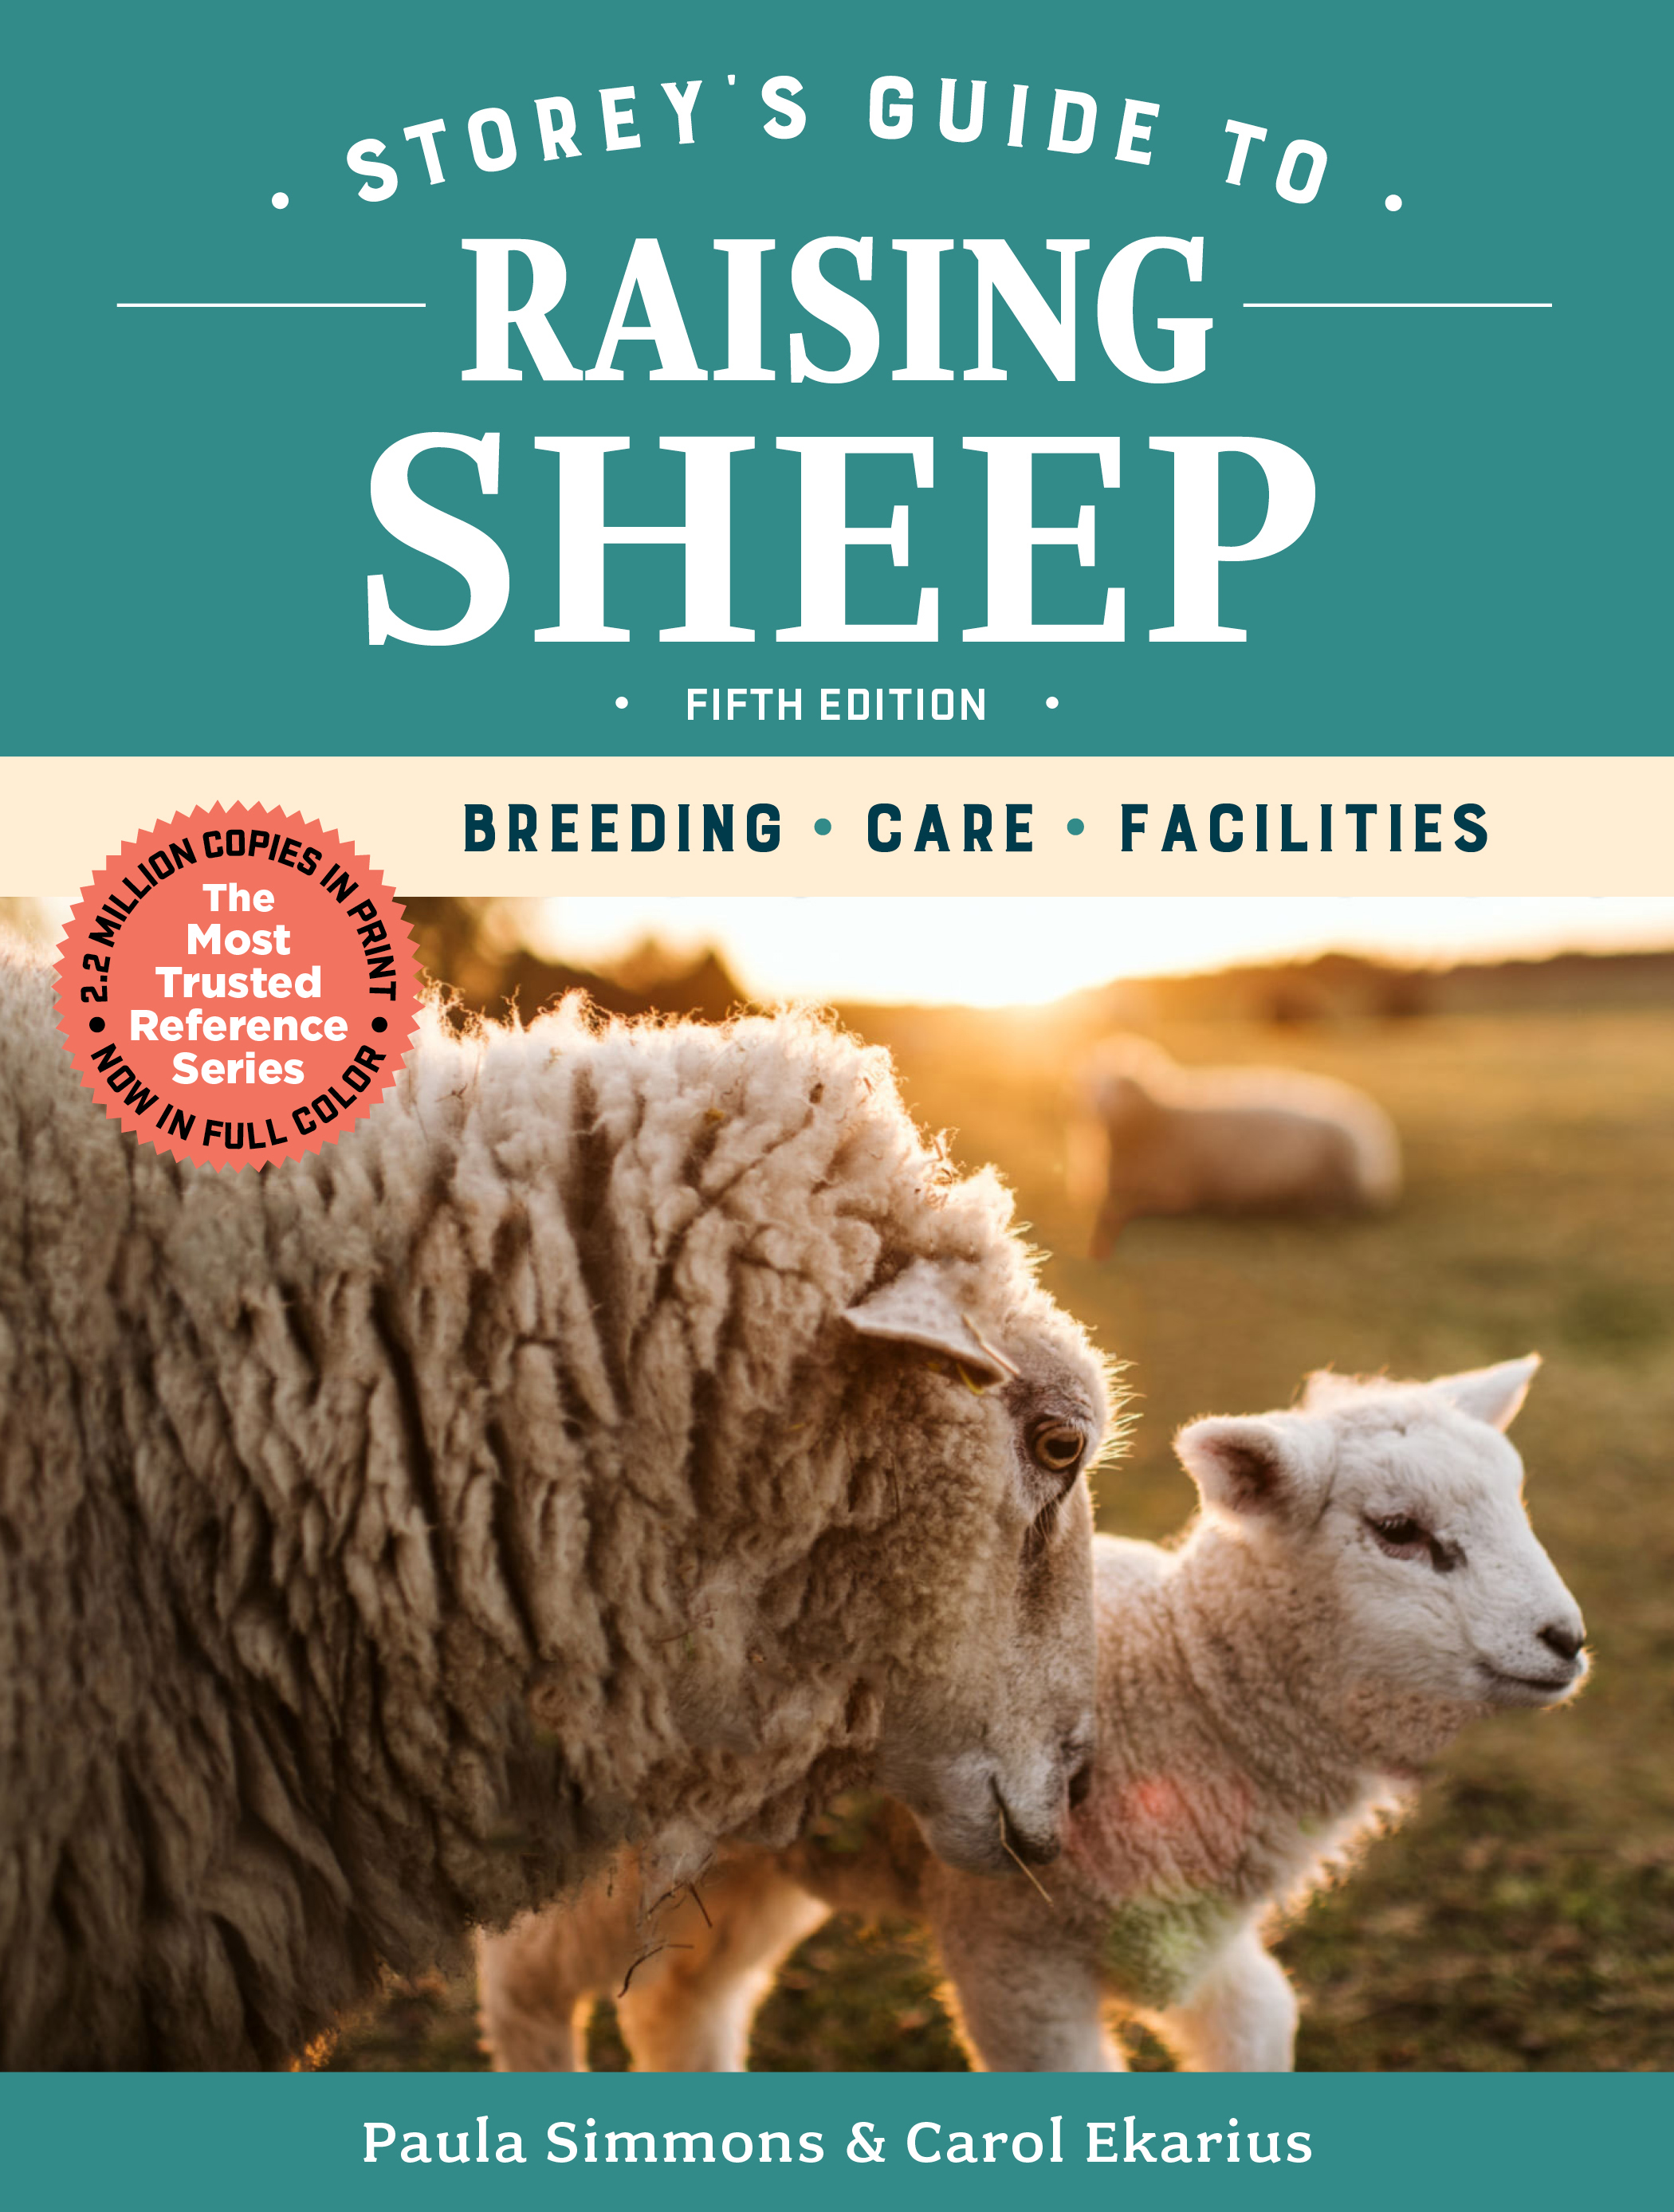 Storey's Guide to Raising Sheep, 5th Edition Breeding, Care, Facilities - Paula Simmons